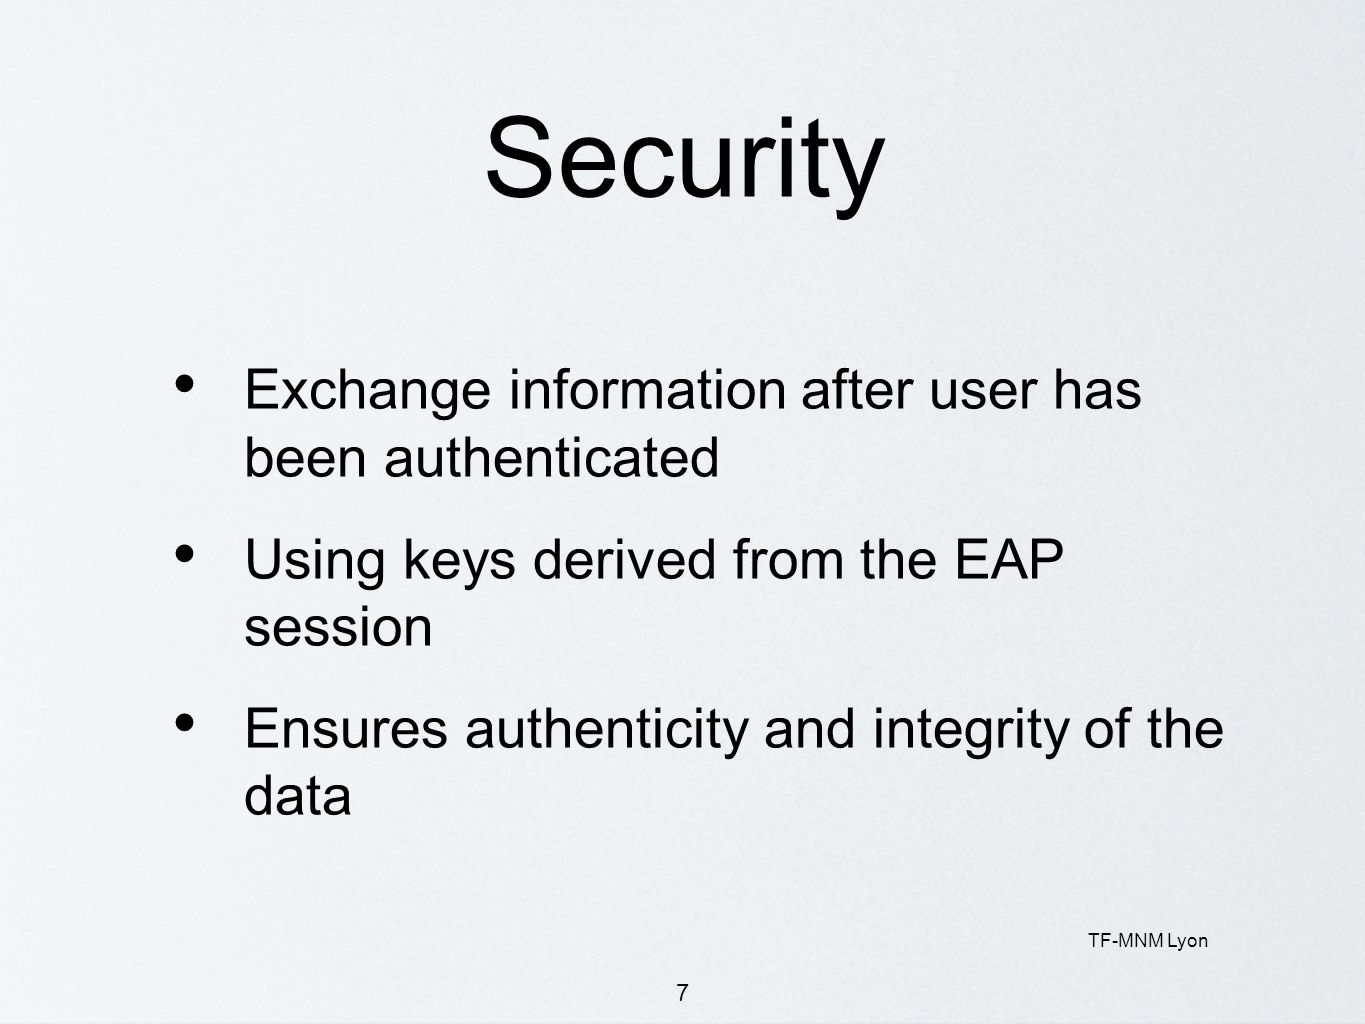 TF-MNM Lyon 7 Security Exchange information after user has been authenticated Using keys derived from the EAP session Ensures authenticity and integri